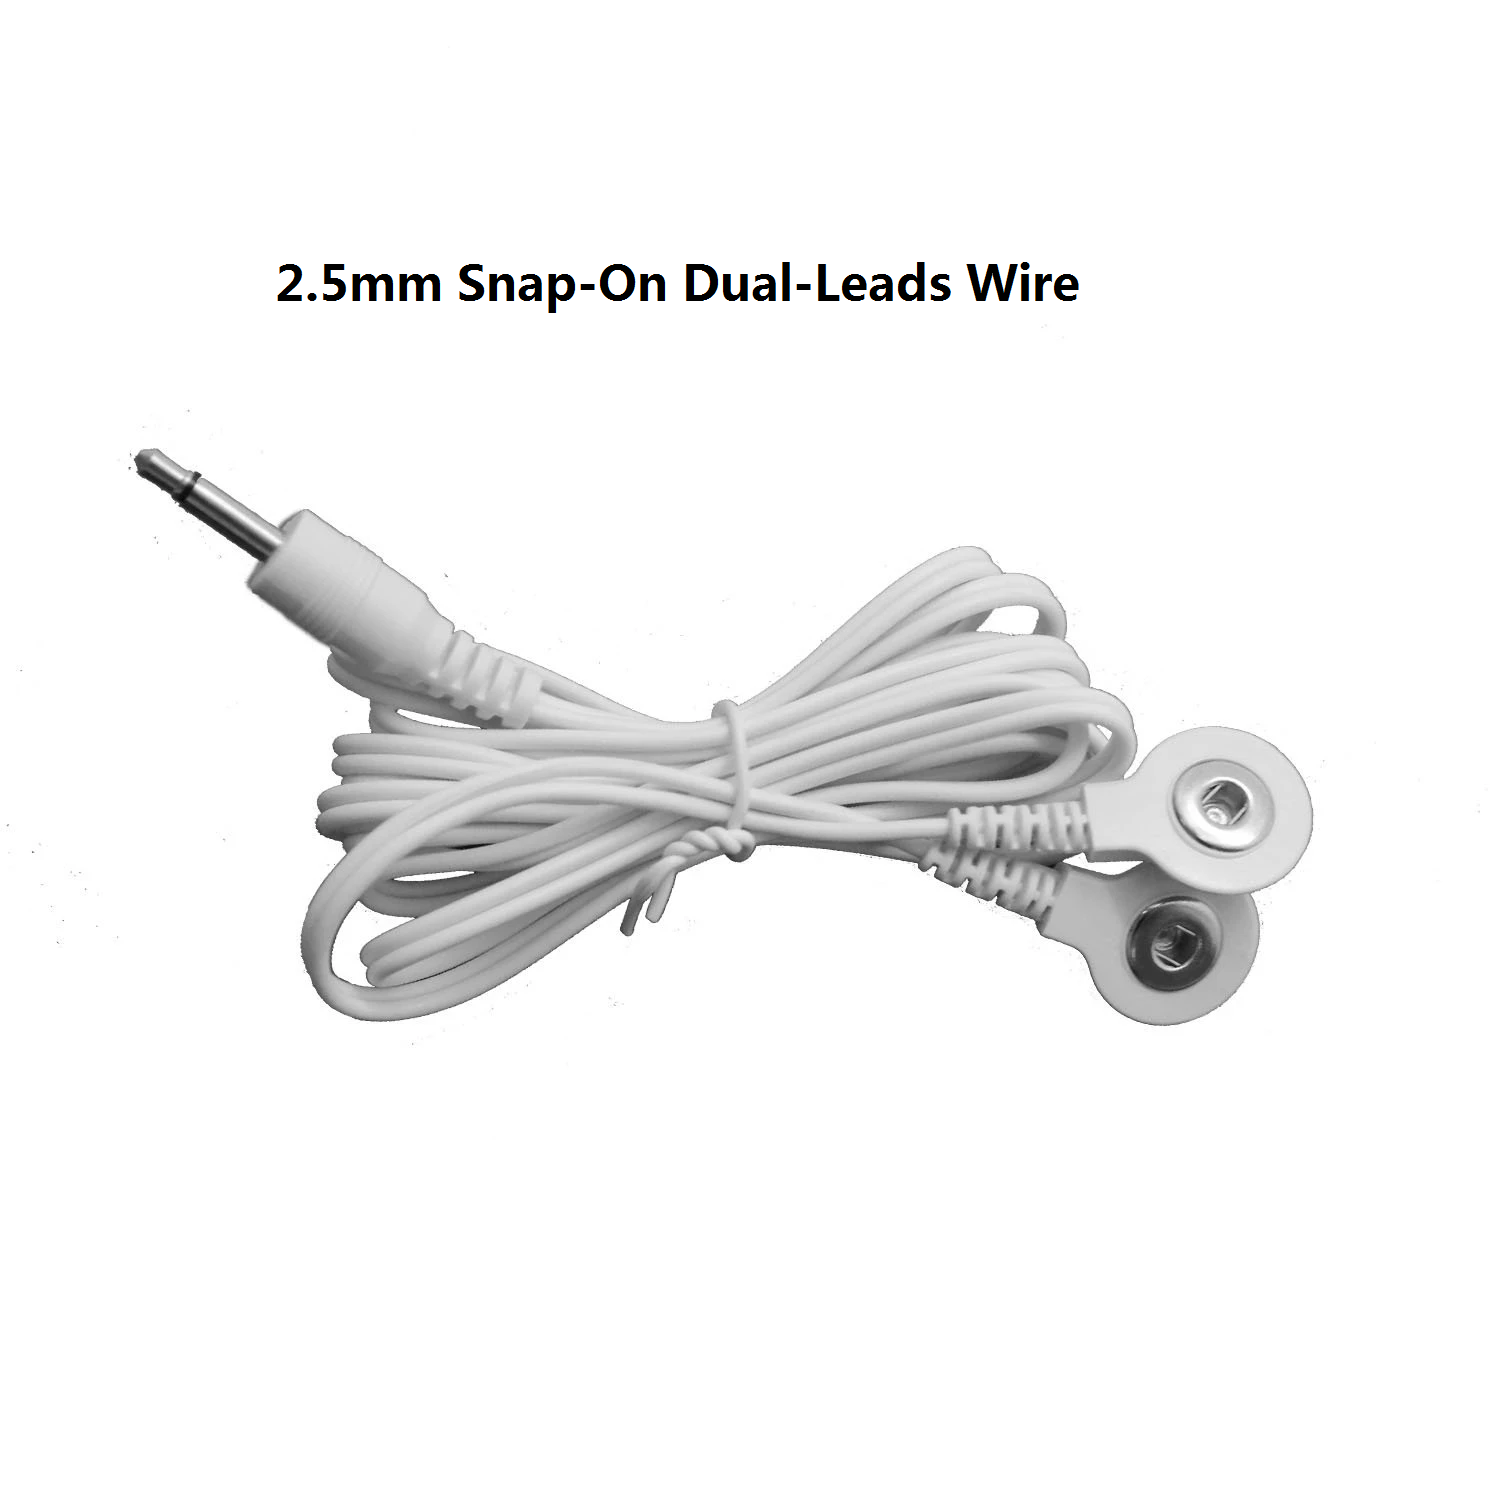 2 Sets of Snap-On Dual-Leads Electrode Wires - HealthmateForever